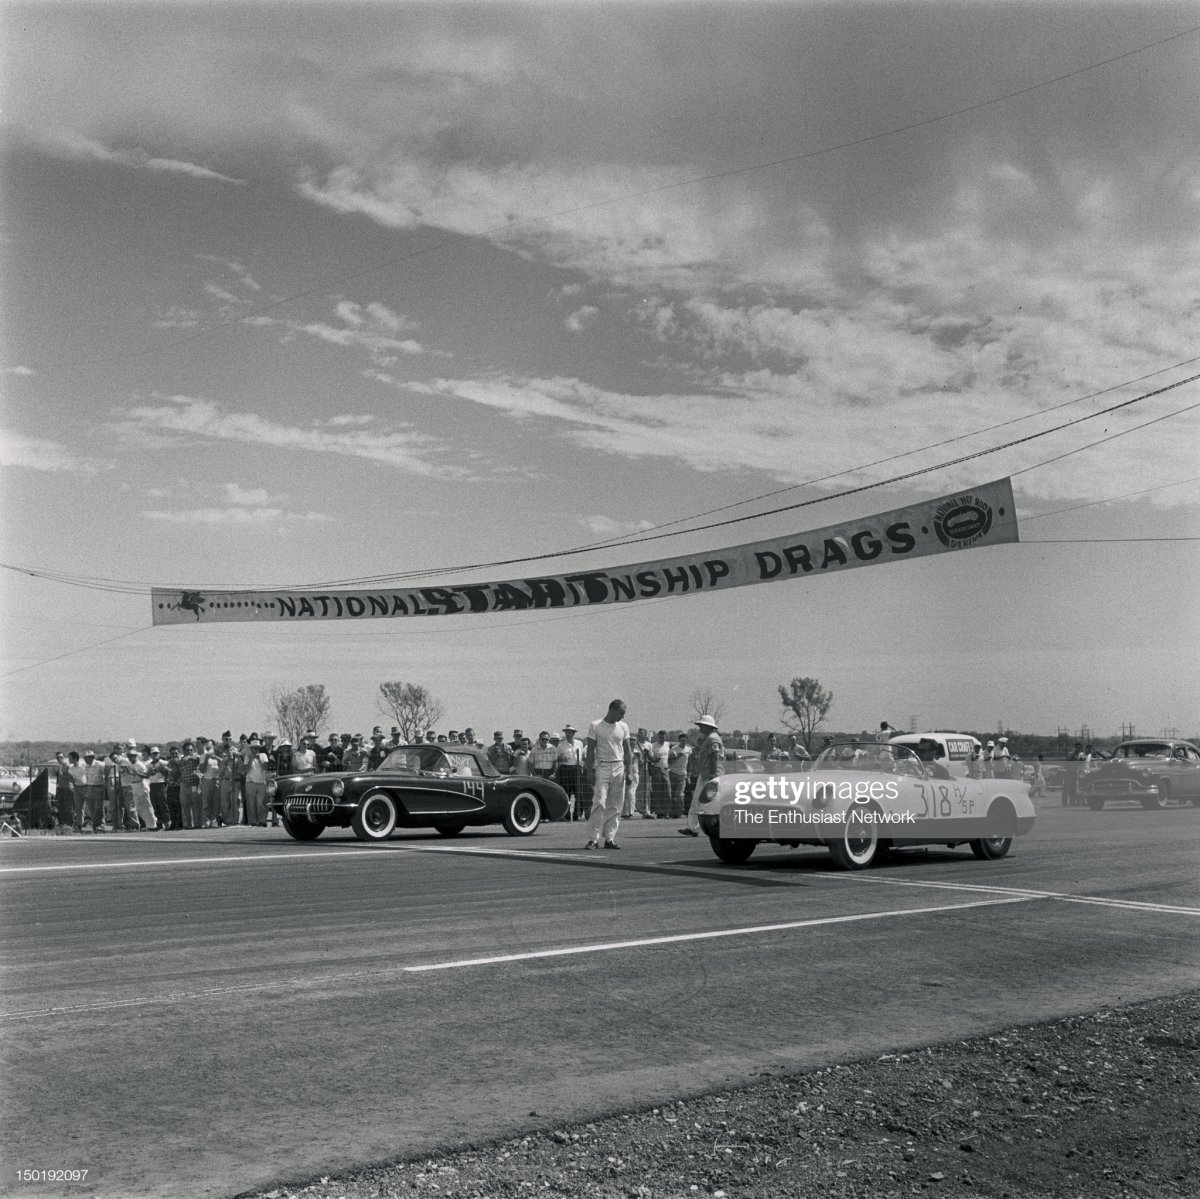 hot4 1956 National Championship Drag Race.jpg